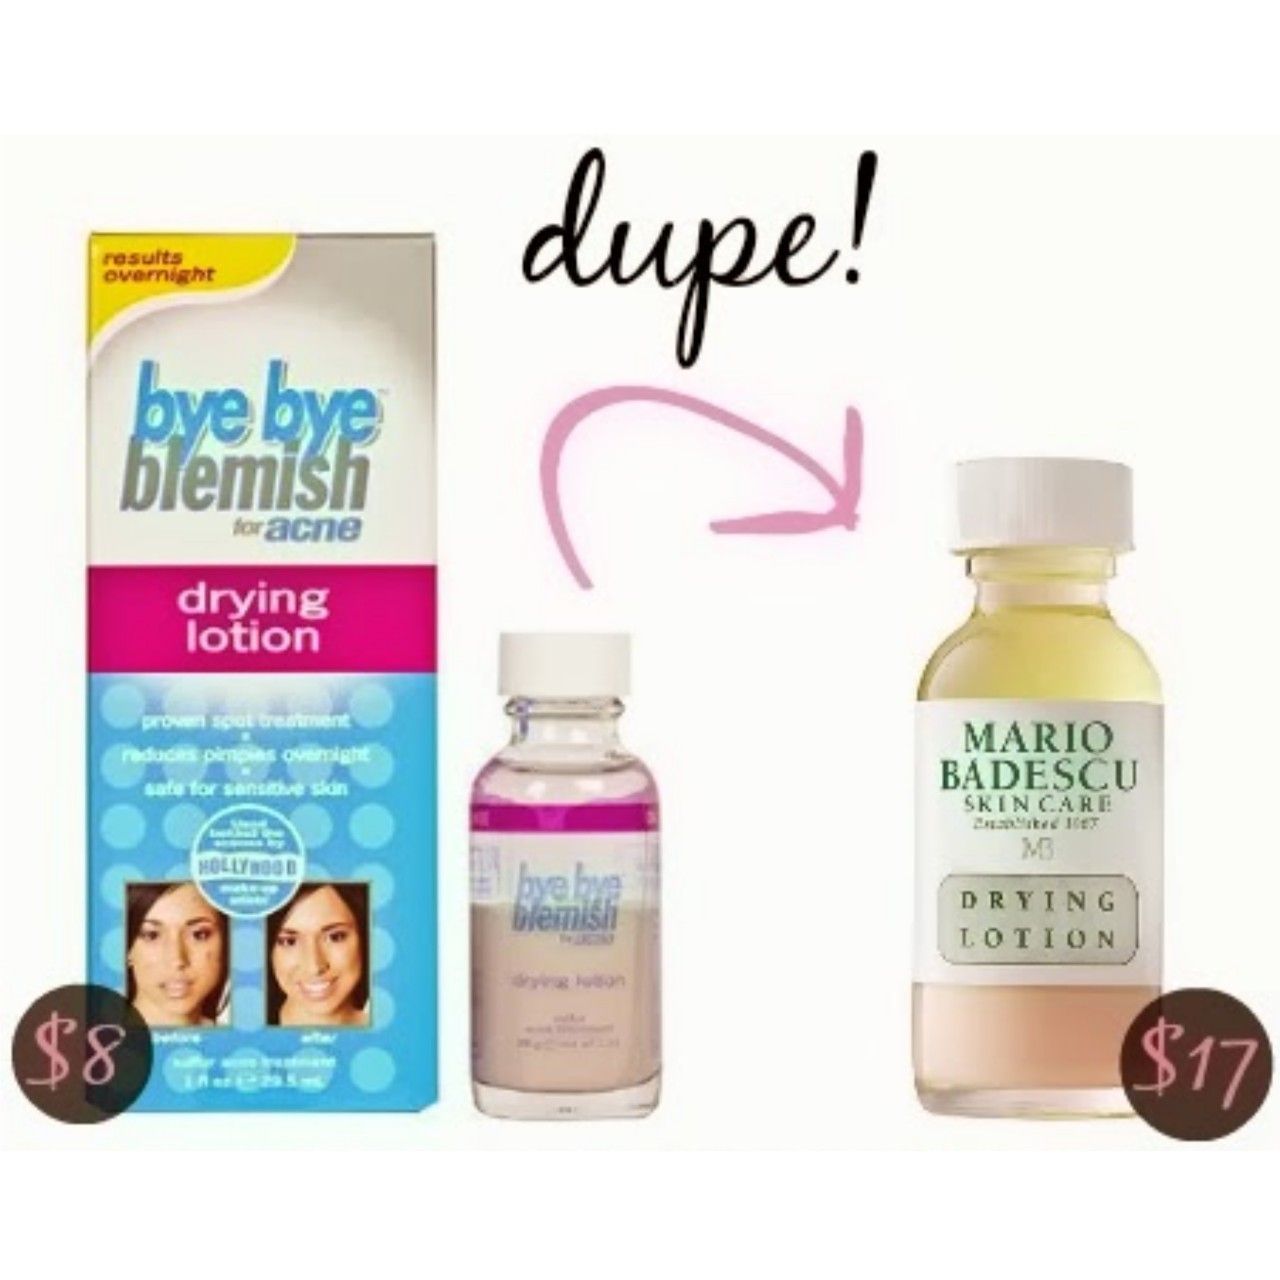 bye bye blemish drying lotion review